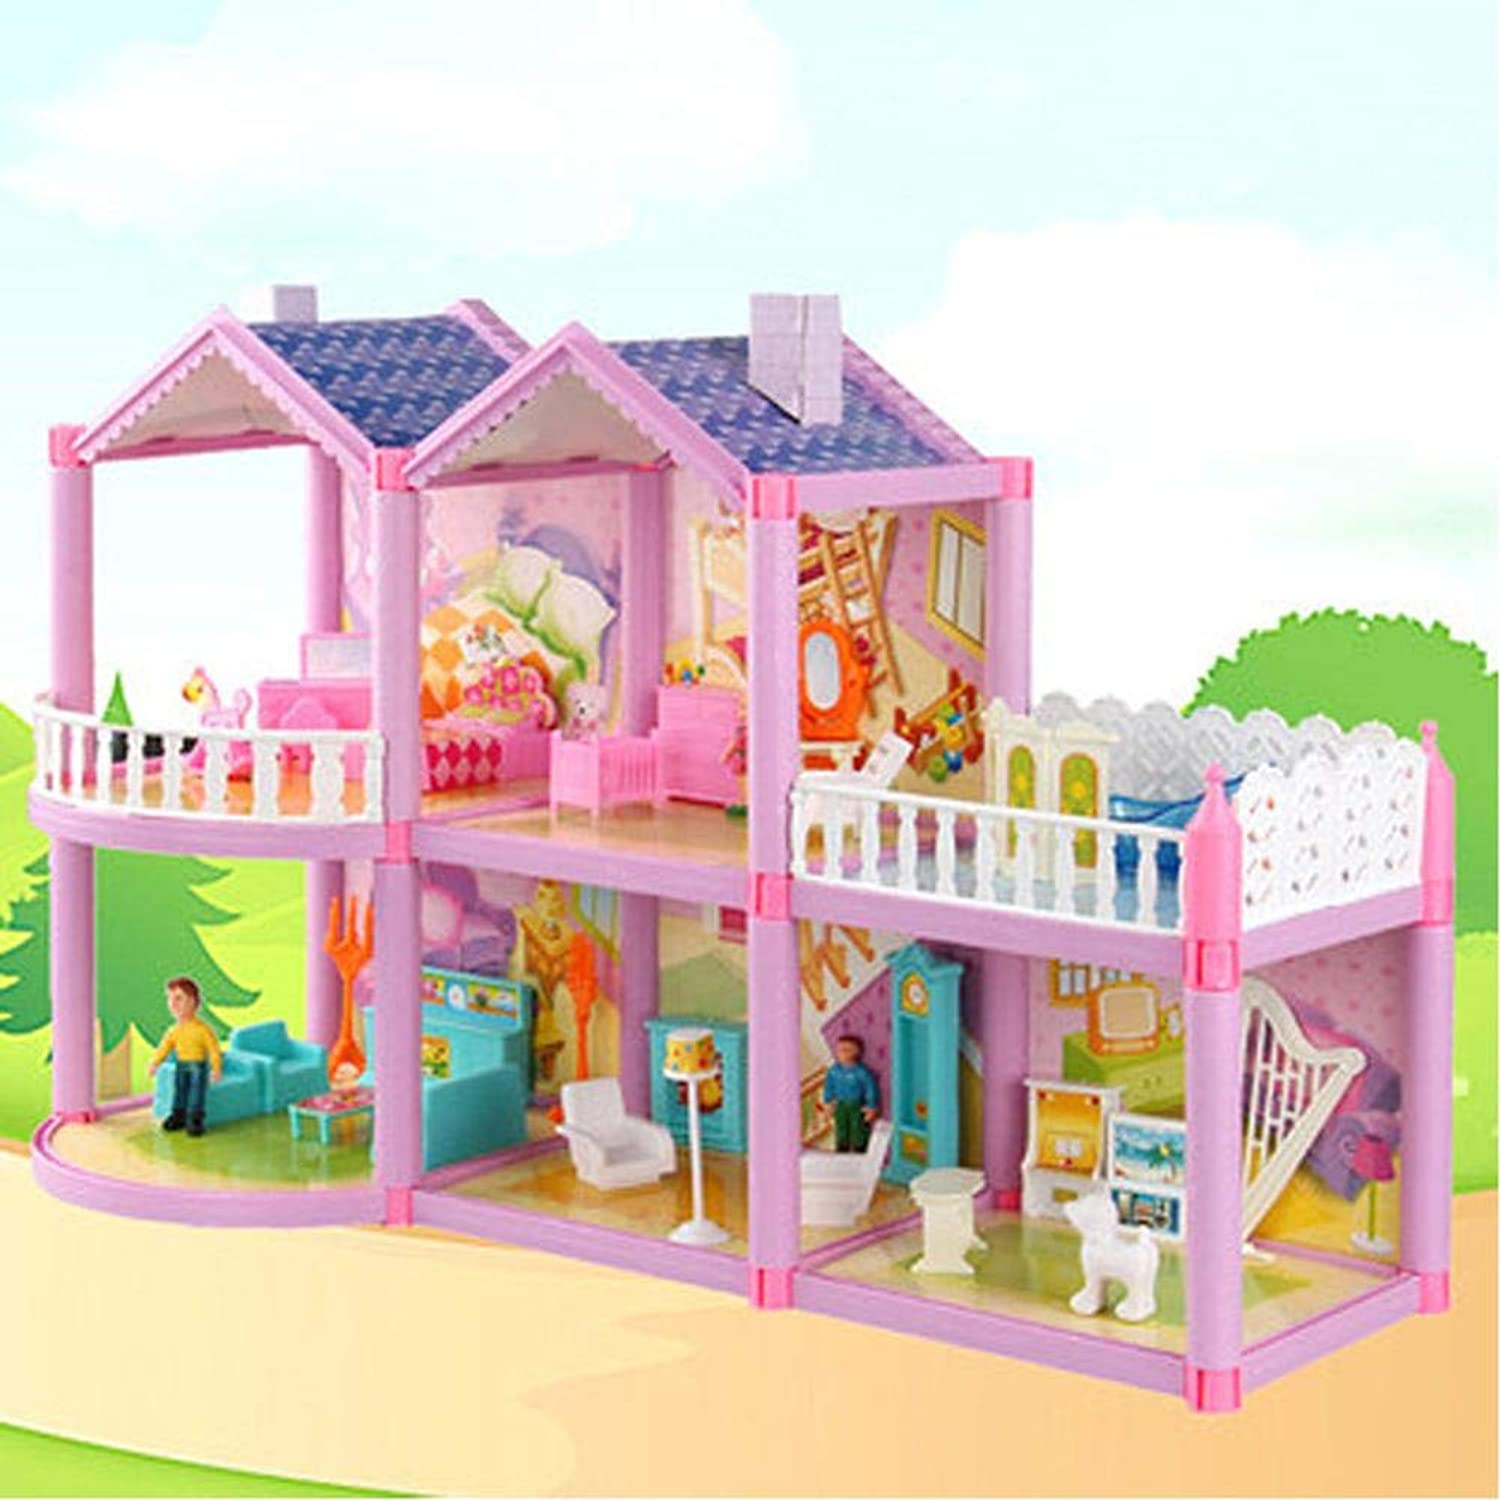 Pretend Play Doll House Toy Playset Portable Dollhouse, a Perfect Toddler Girls and Kids' Toy with Family, Pets, Kitchen Accessories